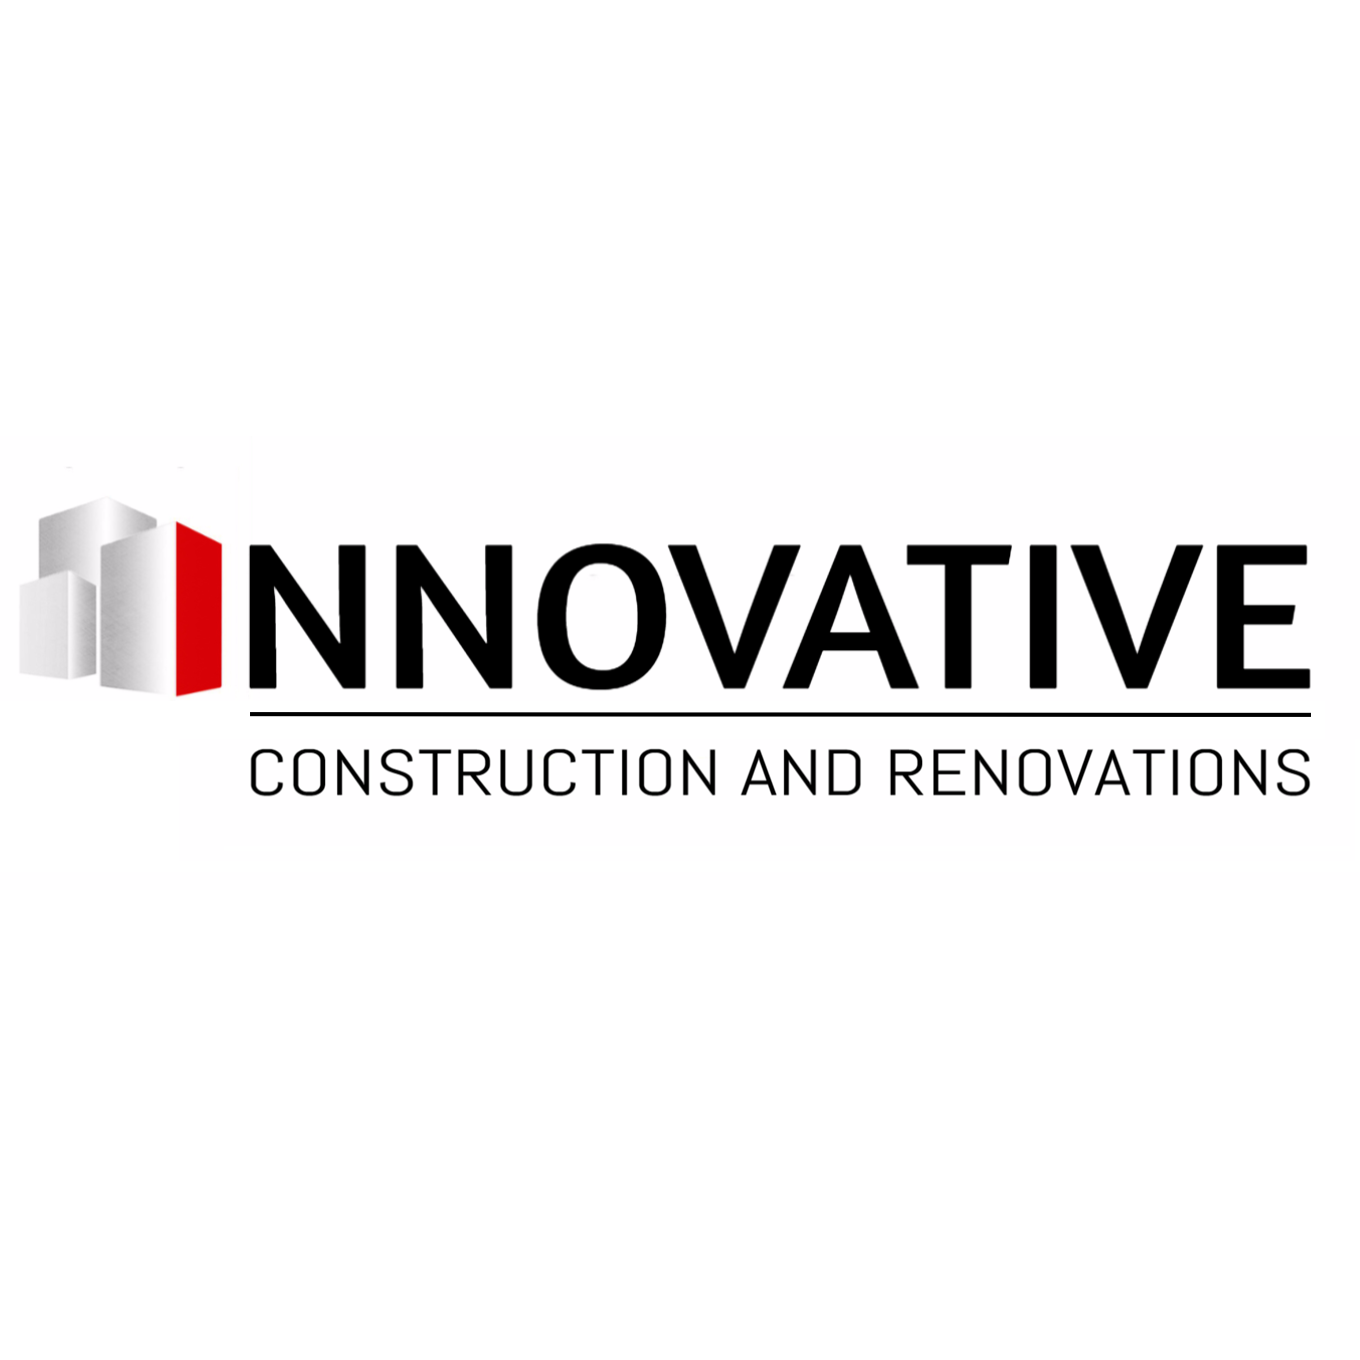 Innovative Construction and Renovations image 68